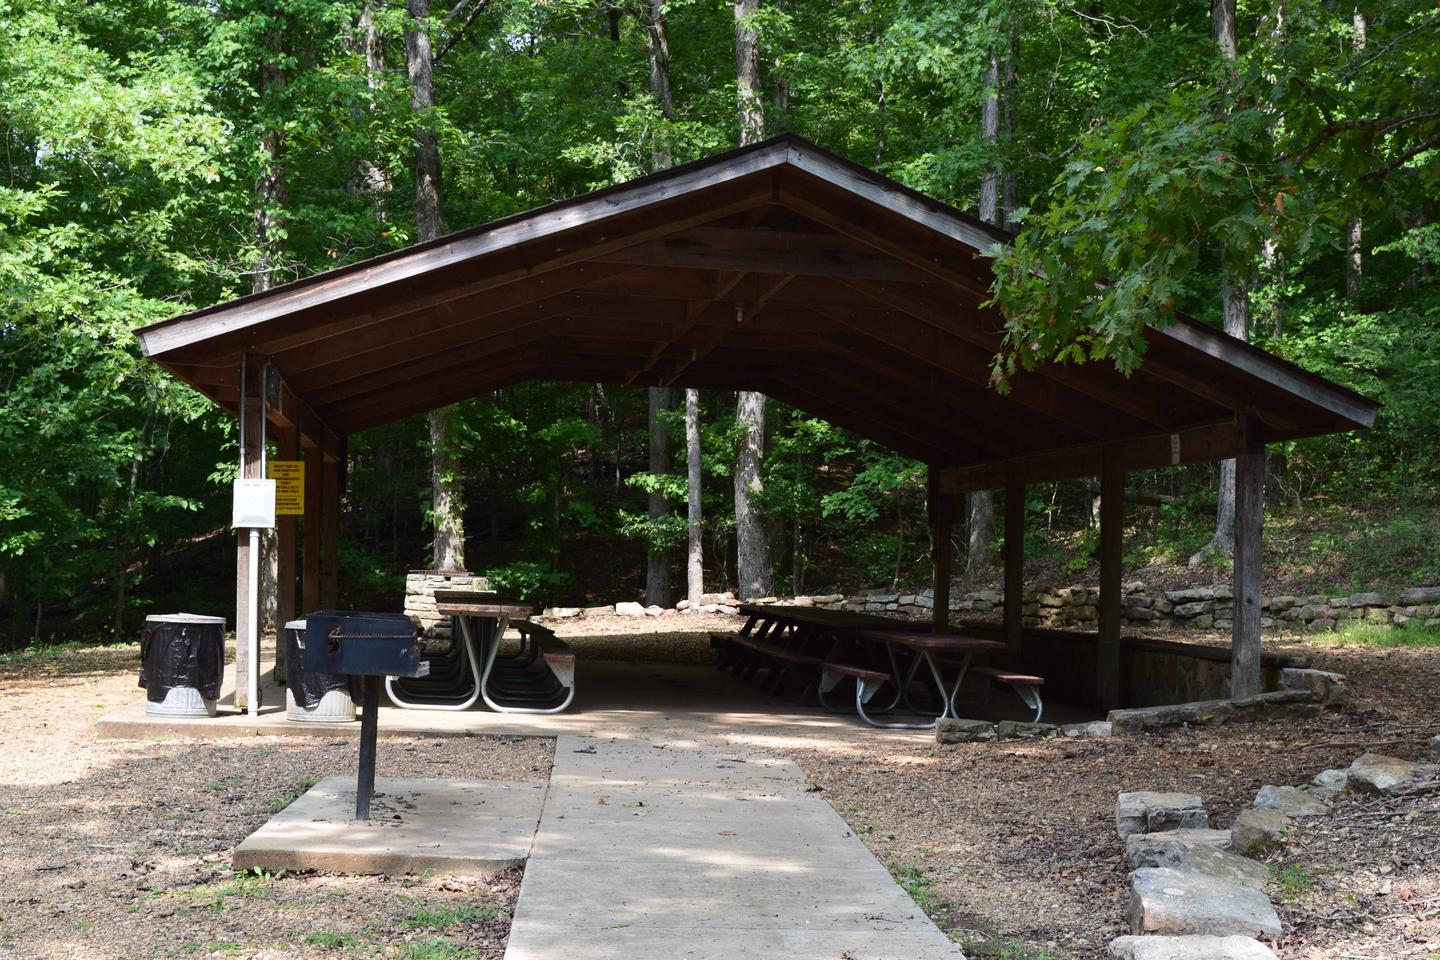 FLOAT CAMP PICNIC AREAPavilion available for reservation